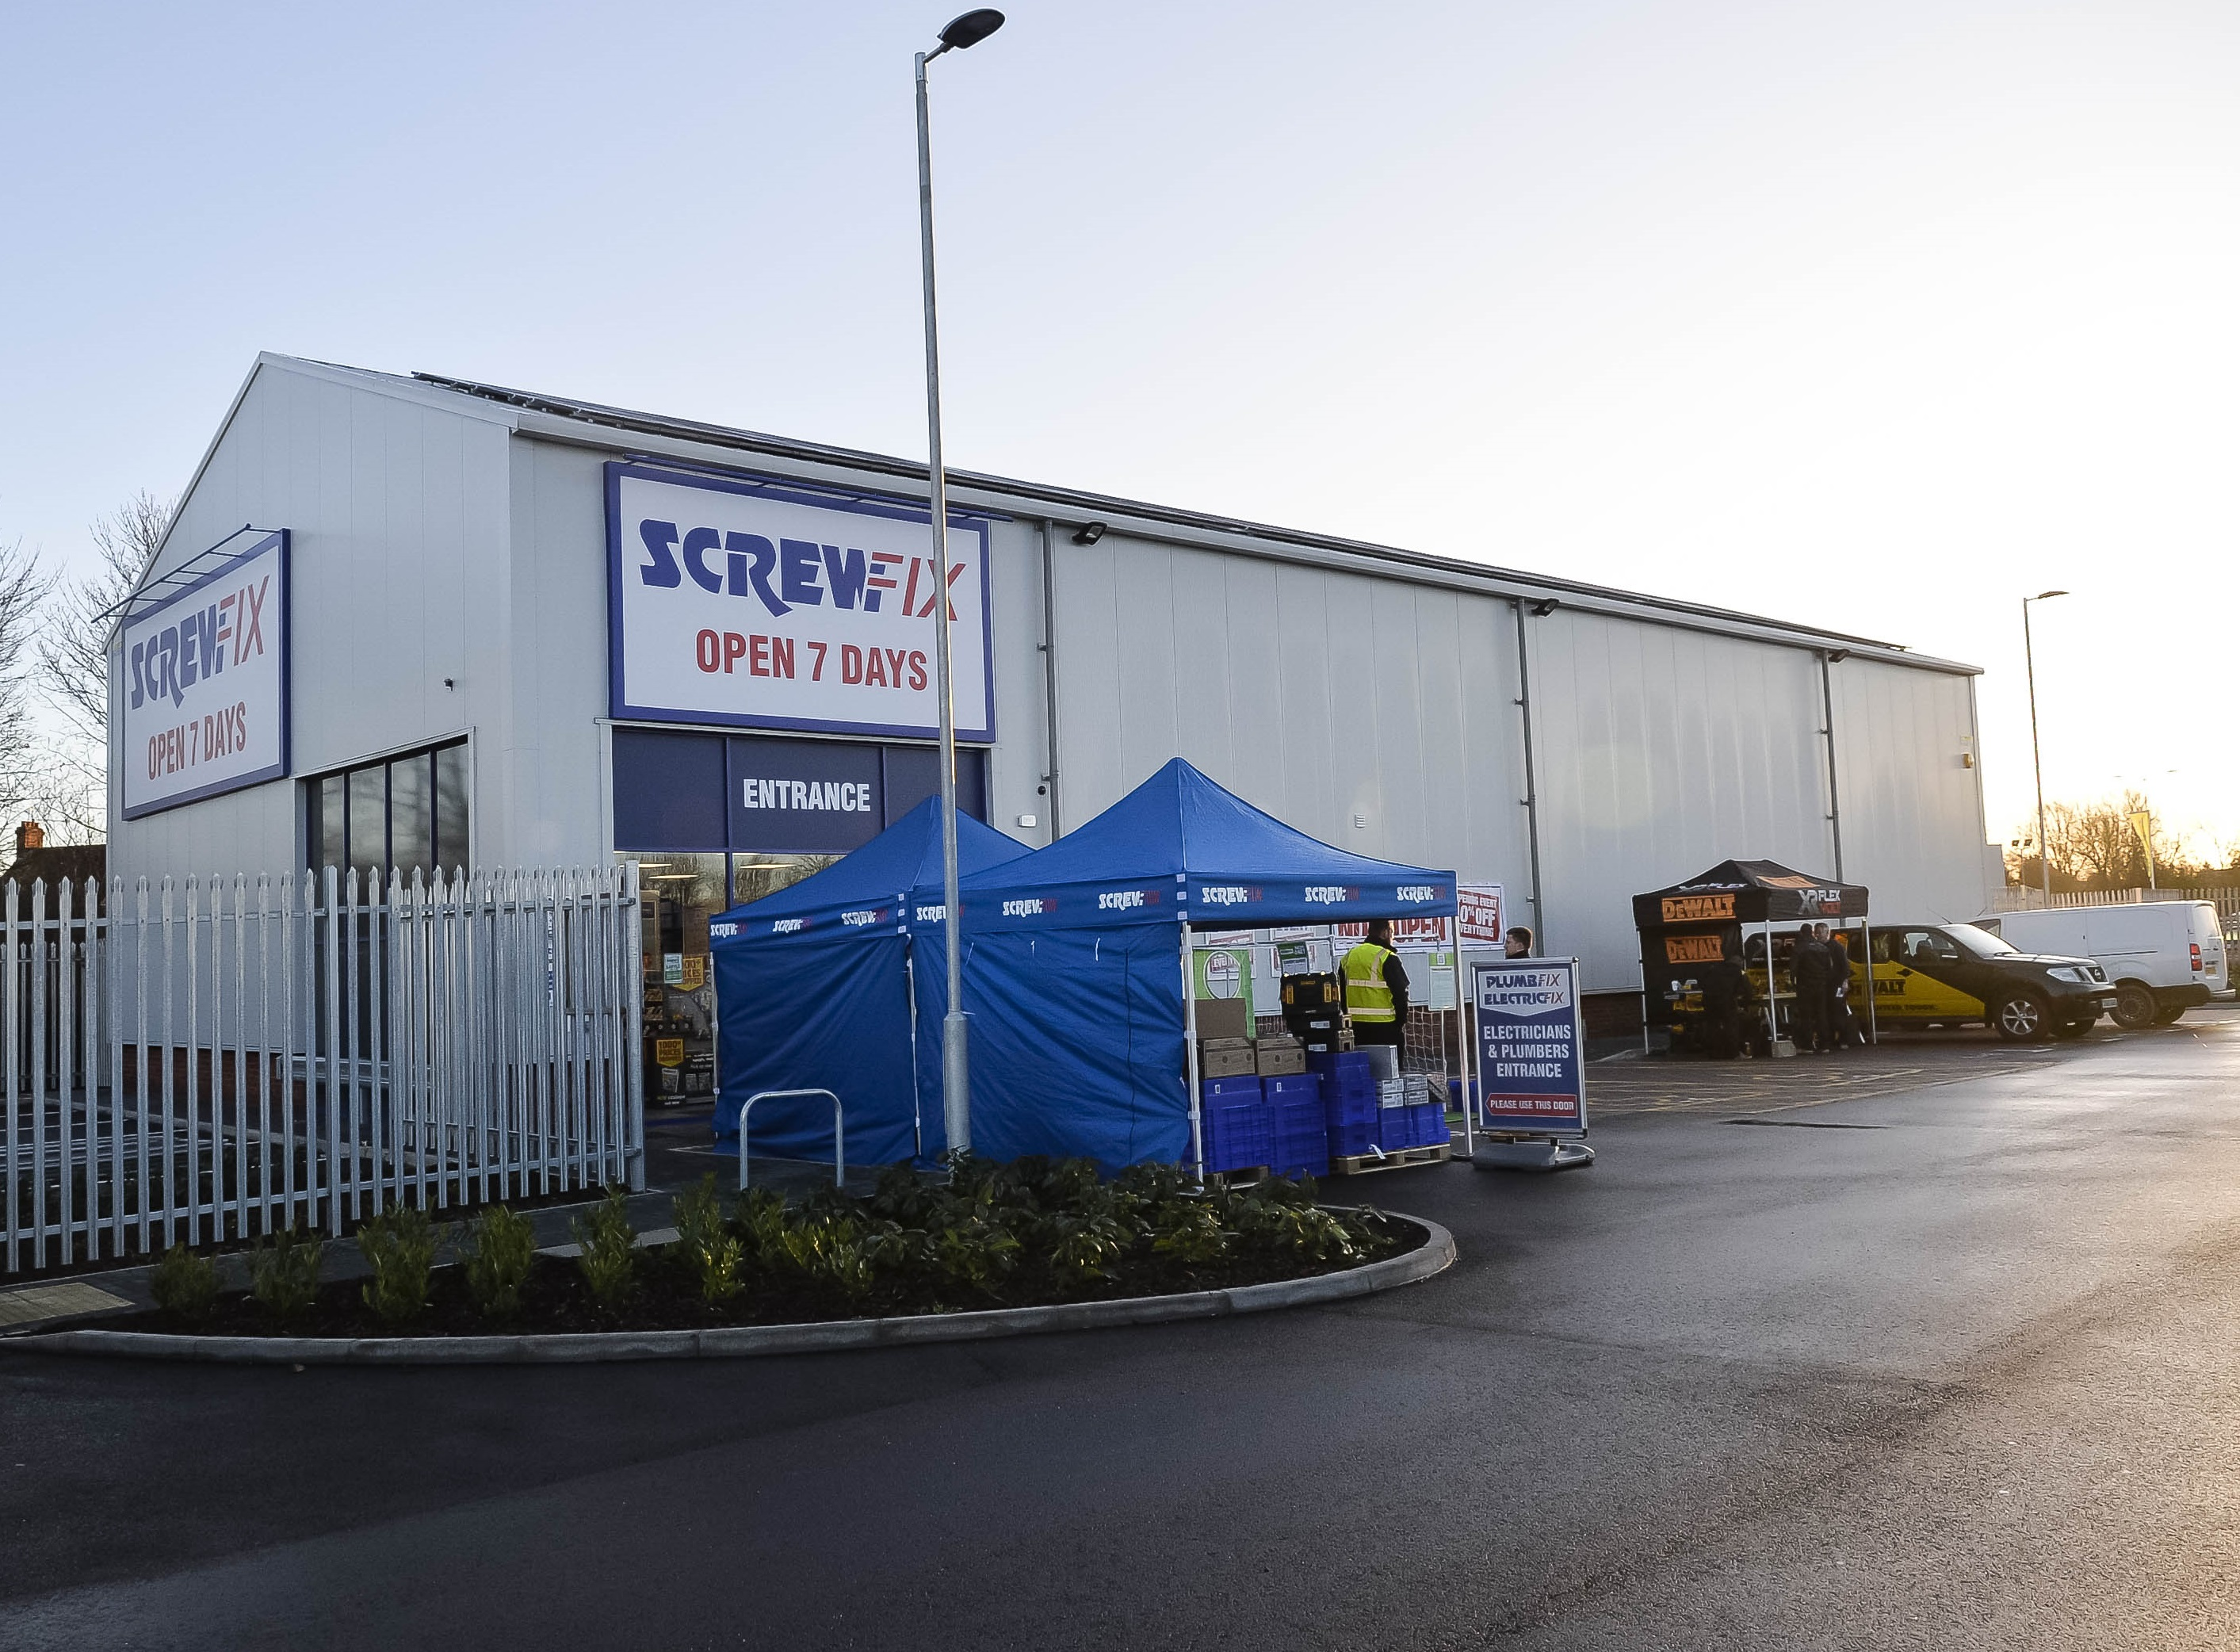 Kingfisher opens net zero energy store powered by solar and storage